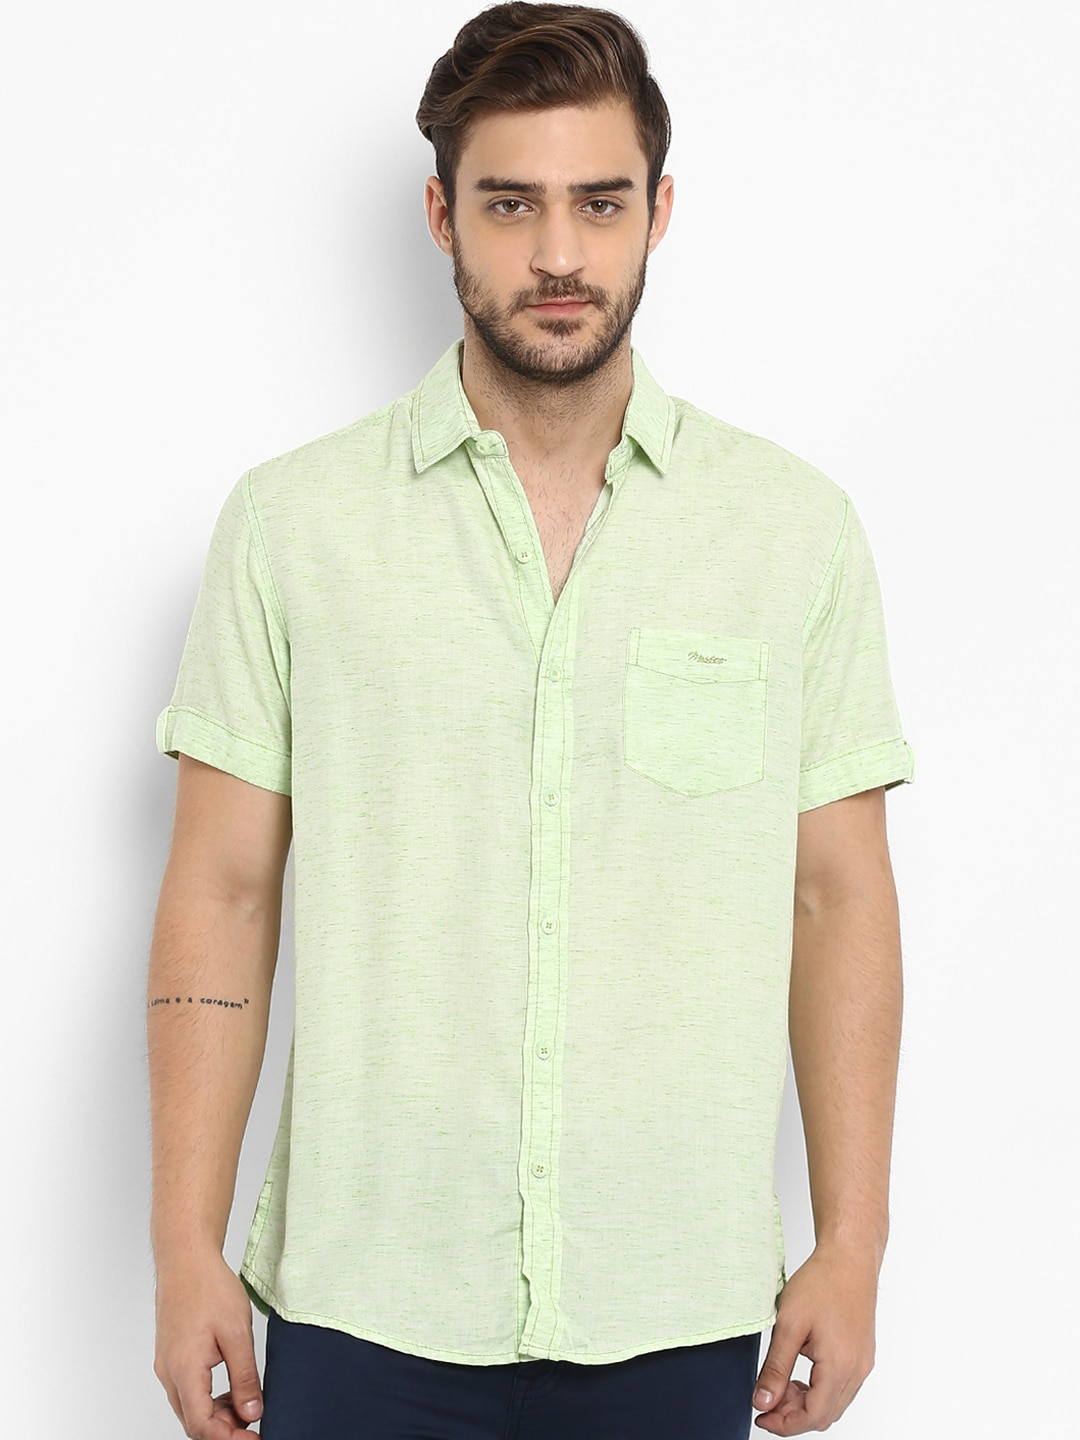 3c3d1ea8d95 Mufti Shirts - Buy Mufti Shirt For Men Online in India